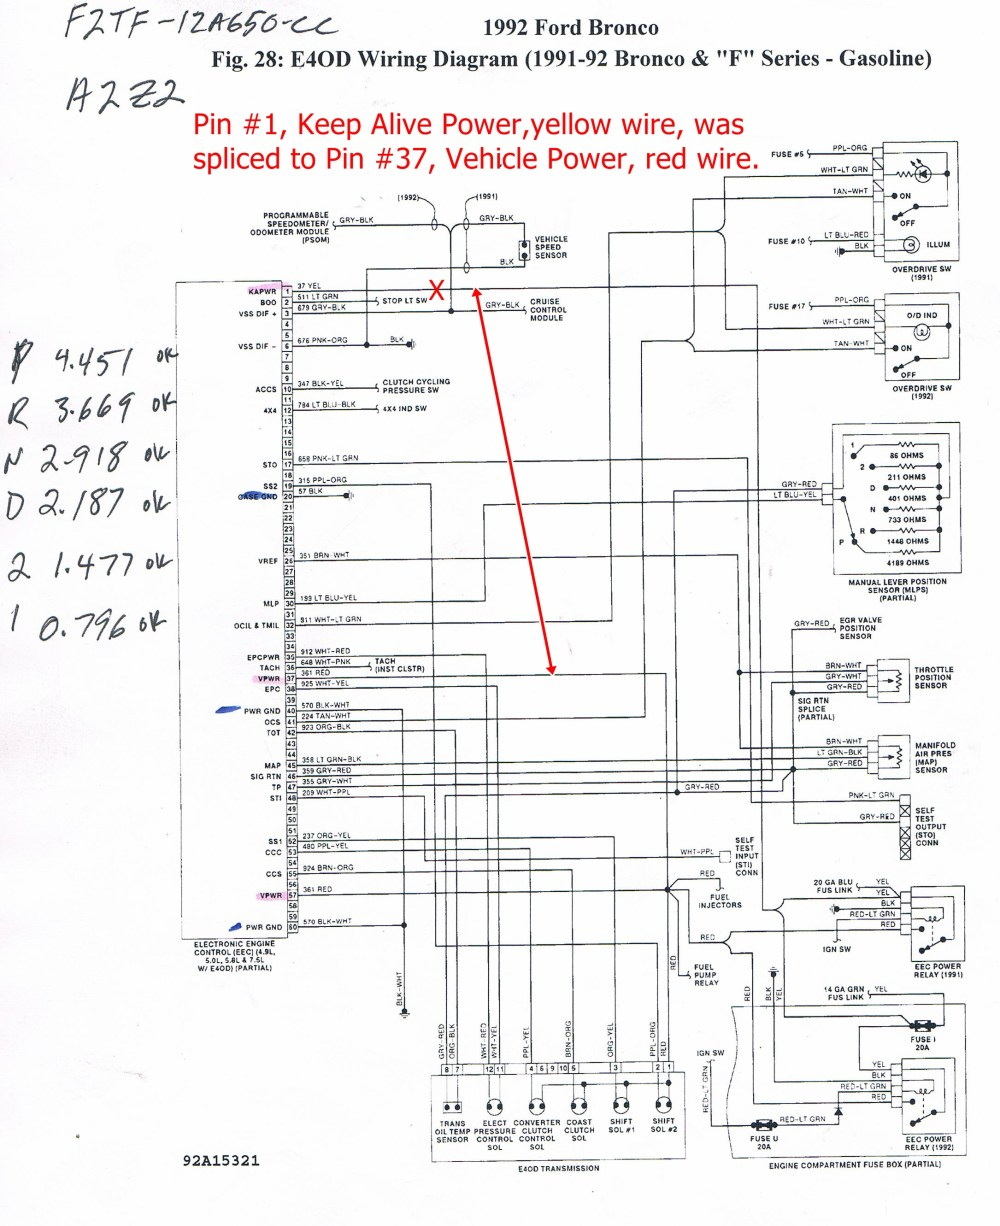 medium resolution of 2007 lexus is 250 wiring diagram wiring library 99 lexus es300 engine diagram amp wiring diagram 2005 lexus